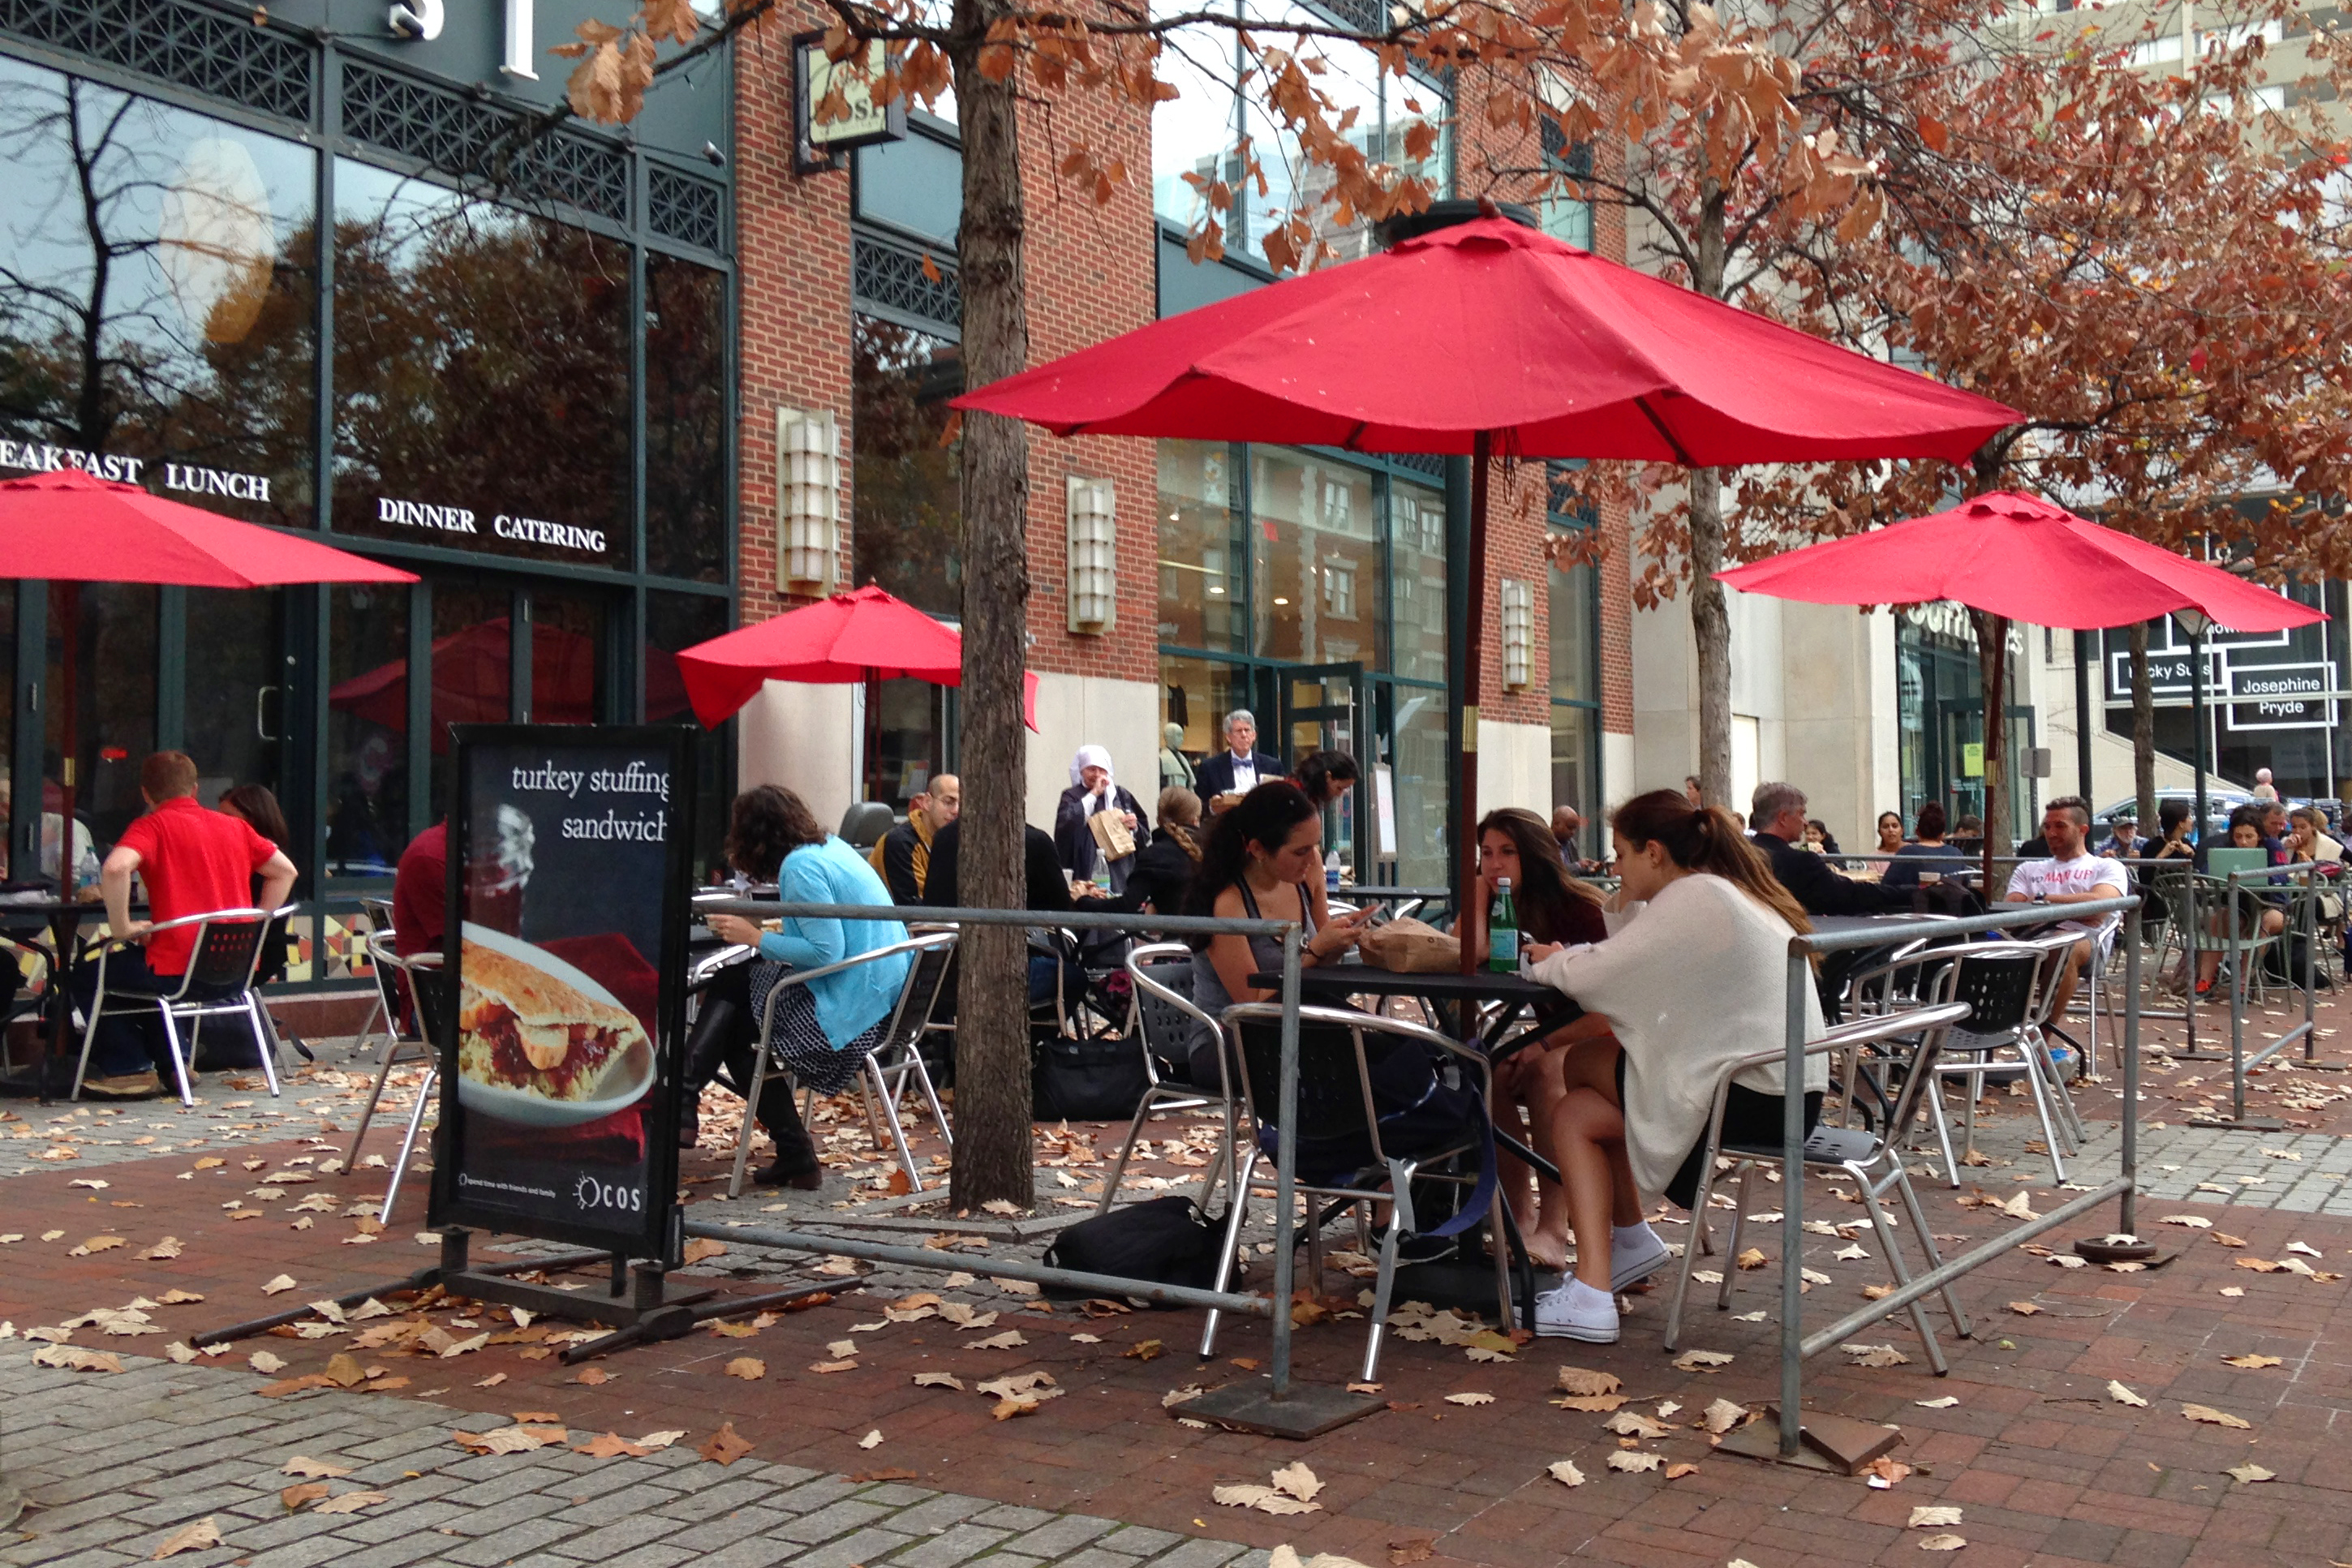 This plaza at the corner of 36th and Walnut Streets in Philadelphia's innovation district provides a prime example of a quality place.